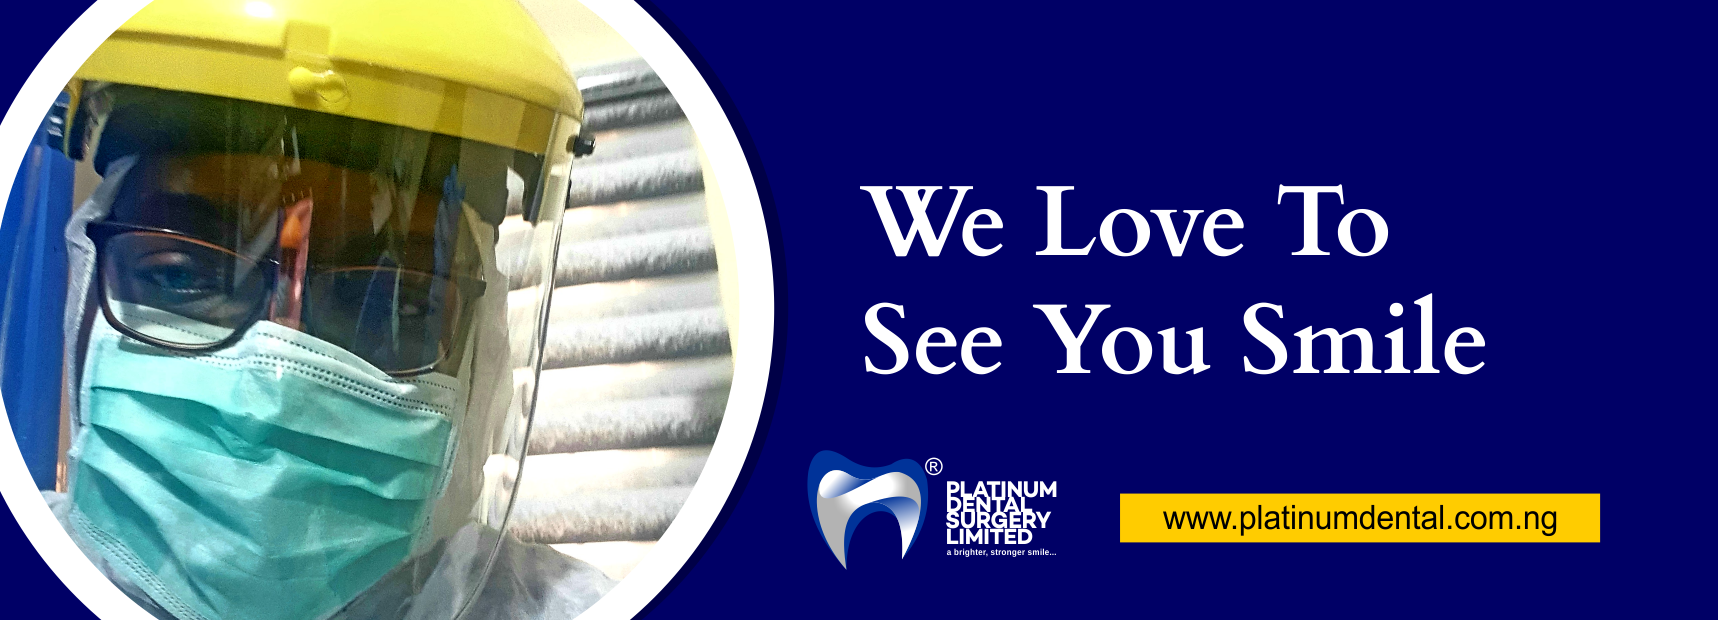 We love to see you smile- Platinum Dental Surgery